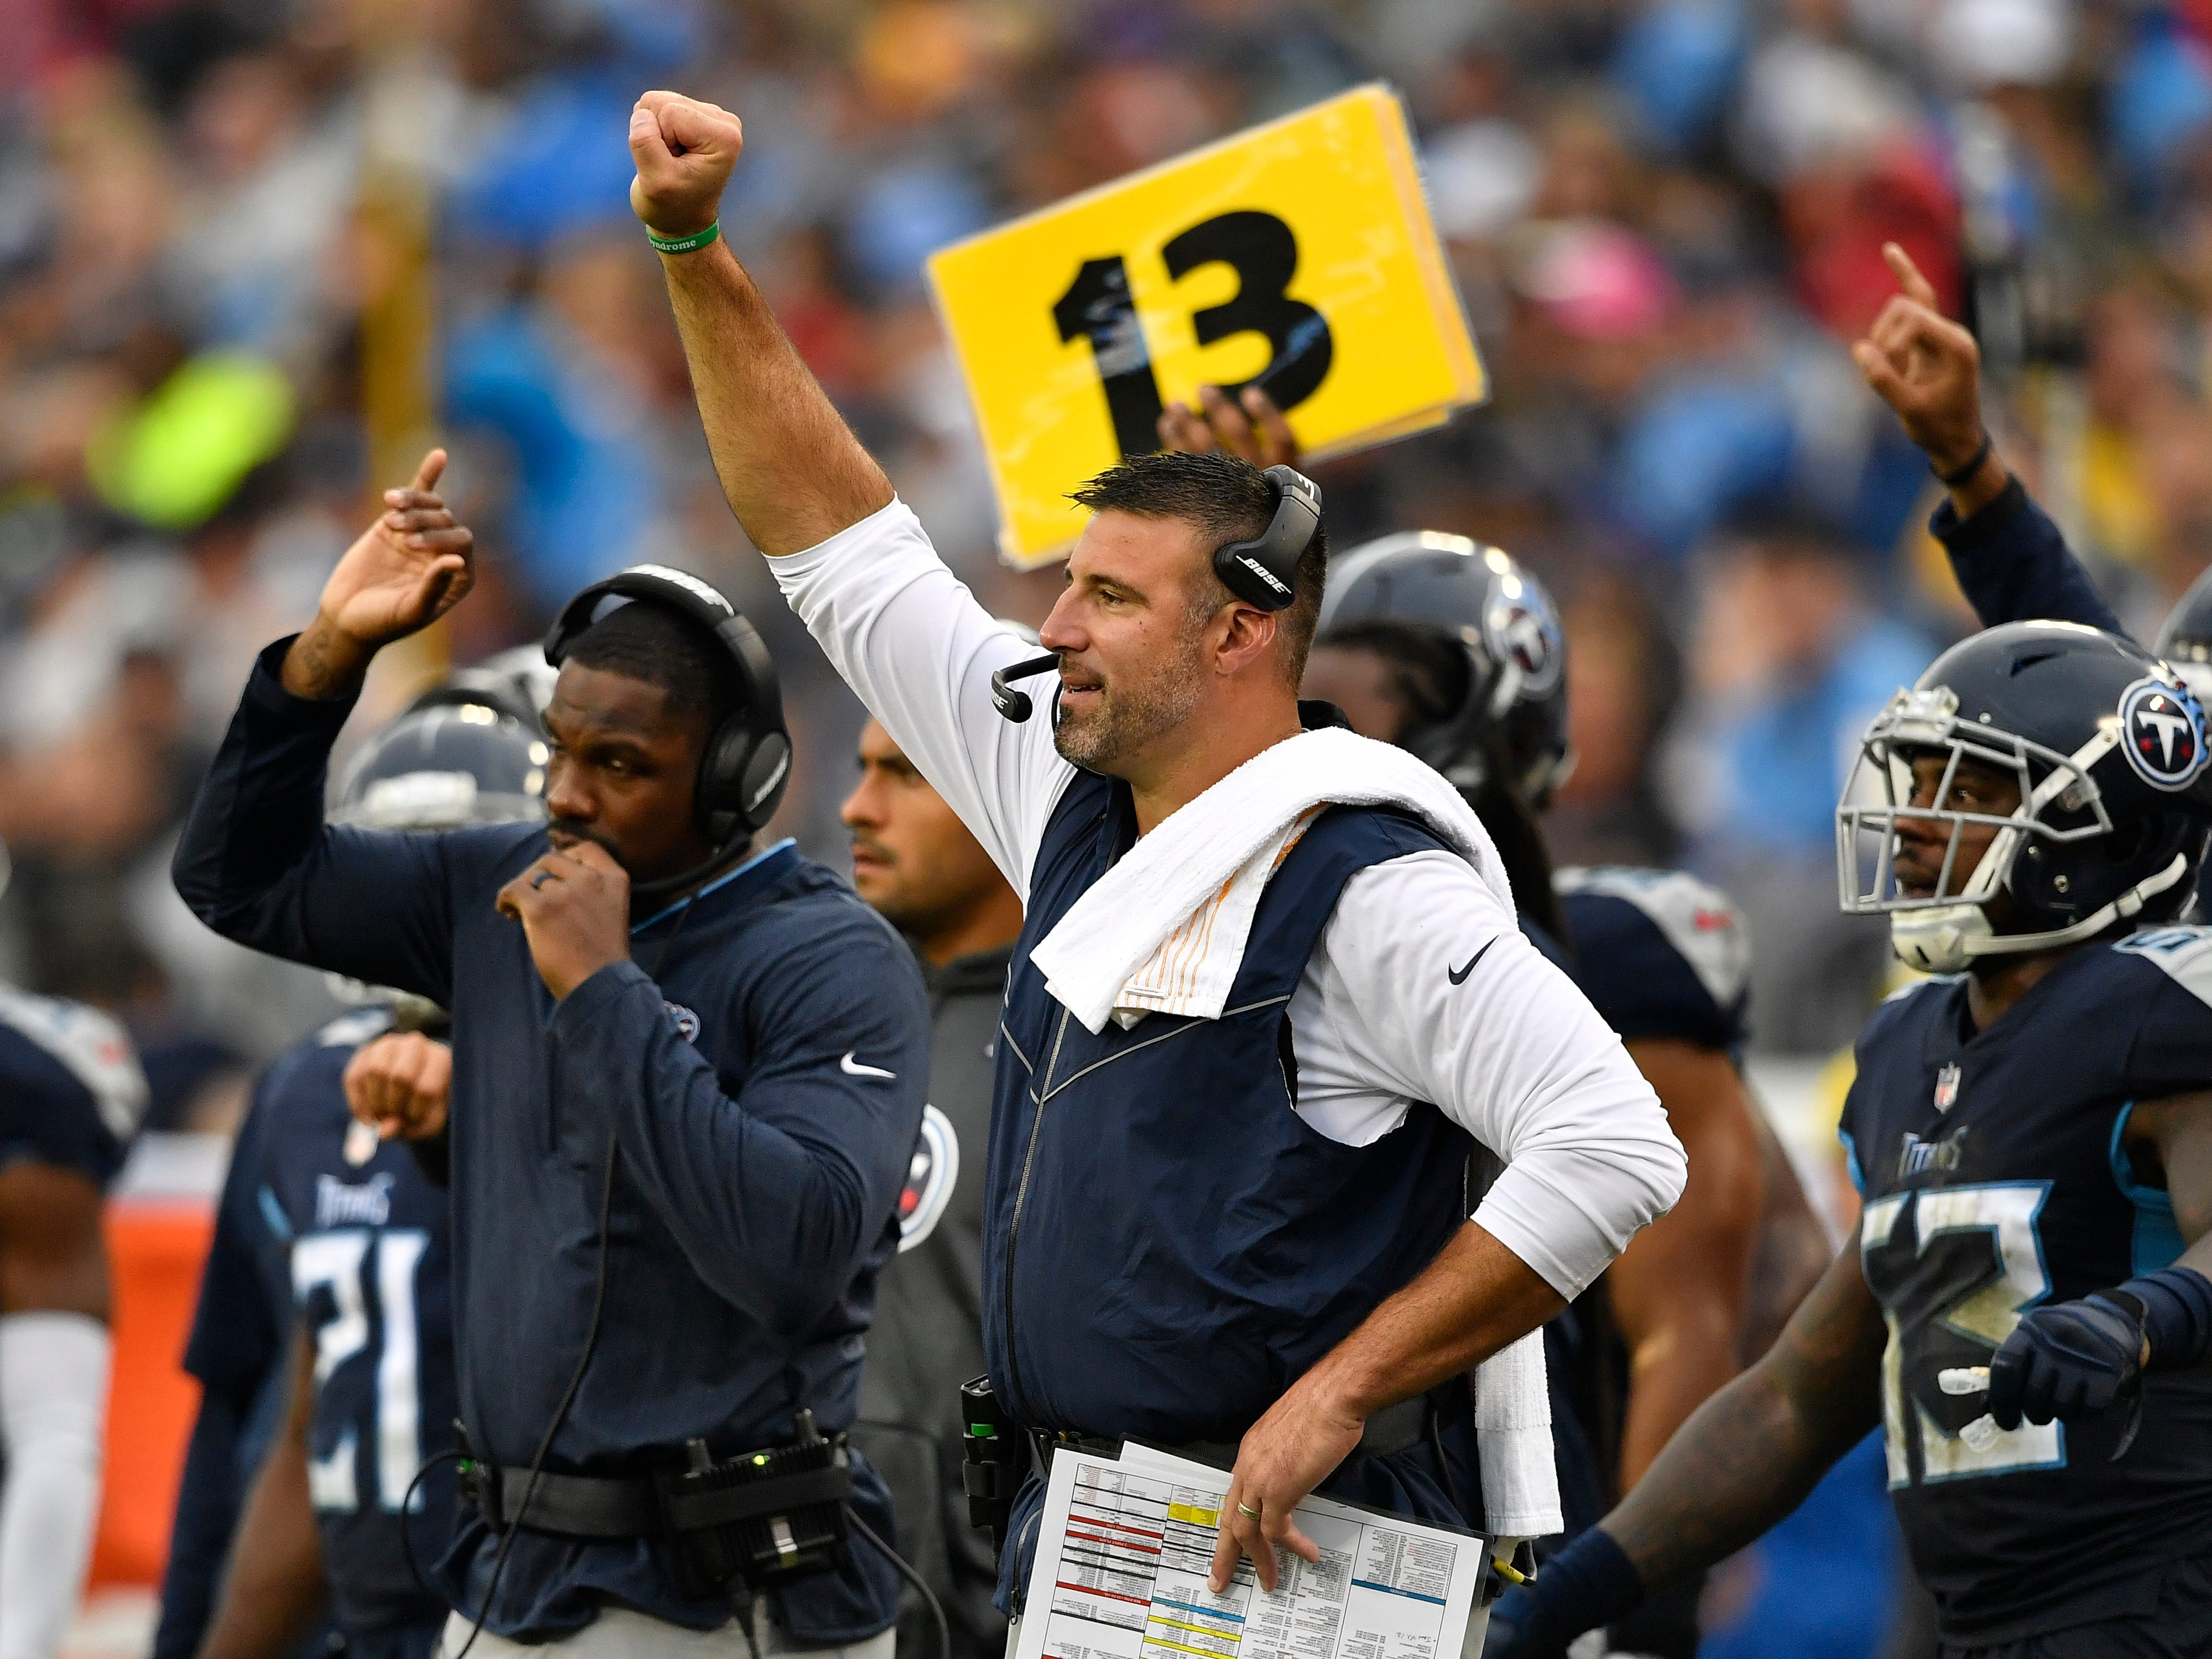 Titans head coach Mike Vrabel gives his team directions during the third quarter at Nissan Stadium Sunday, Oct. 14, 2018, in Nashville, Tenn.